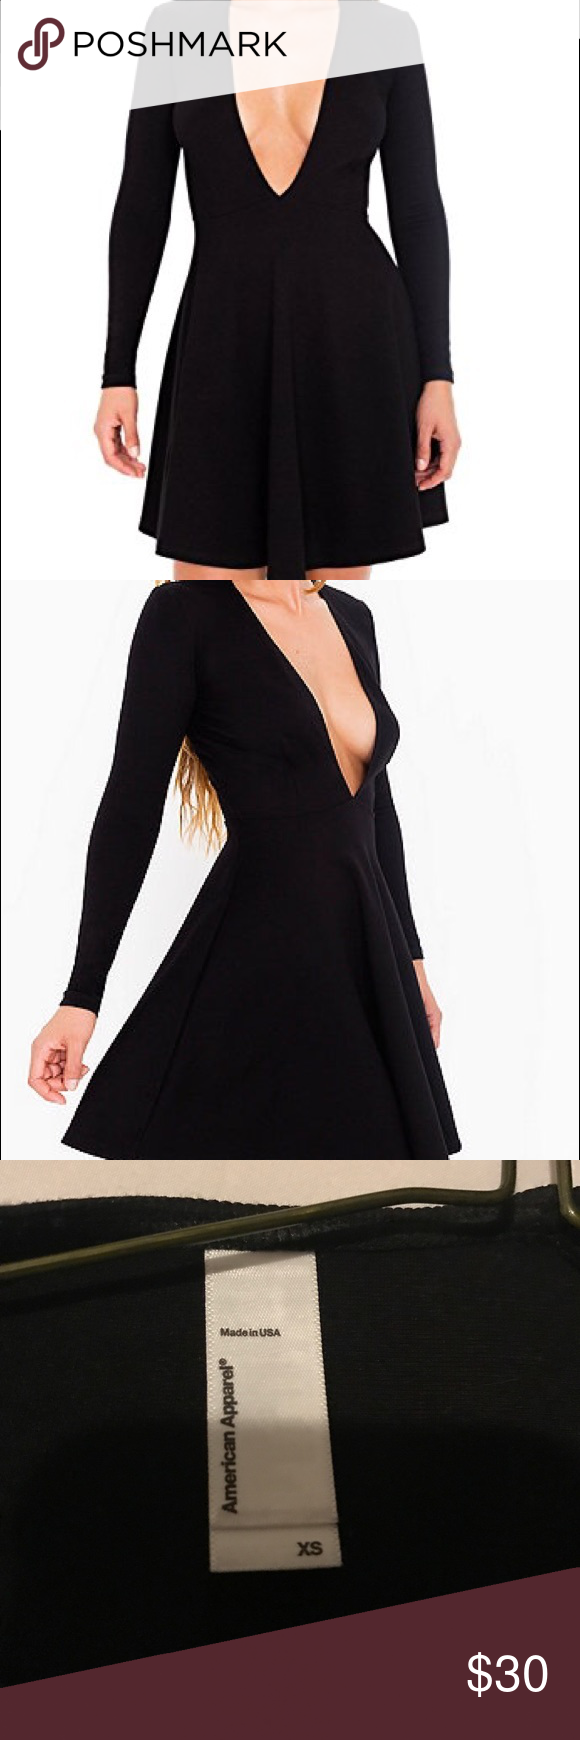 Deep v ponte skater dress American apparel deep v skater dress American Apparel Dresses Mini